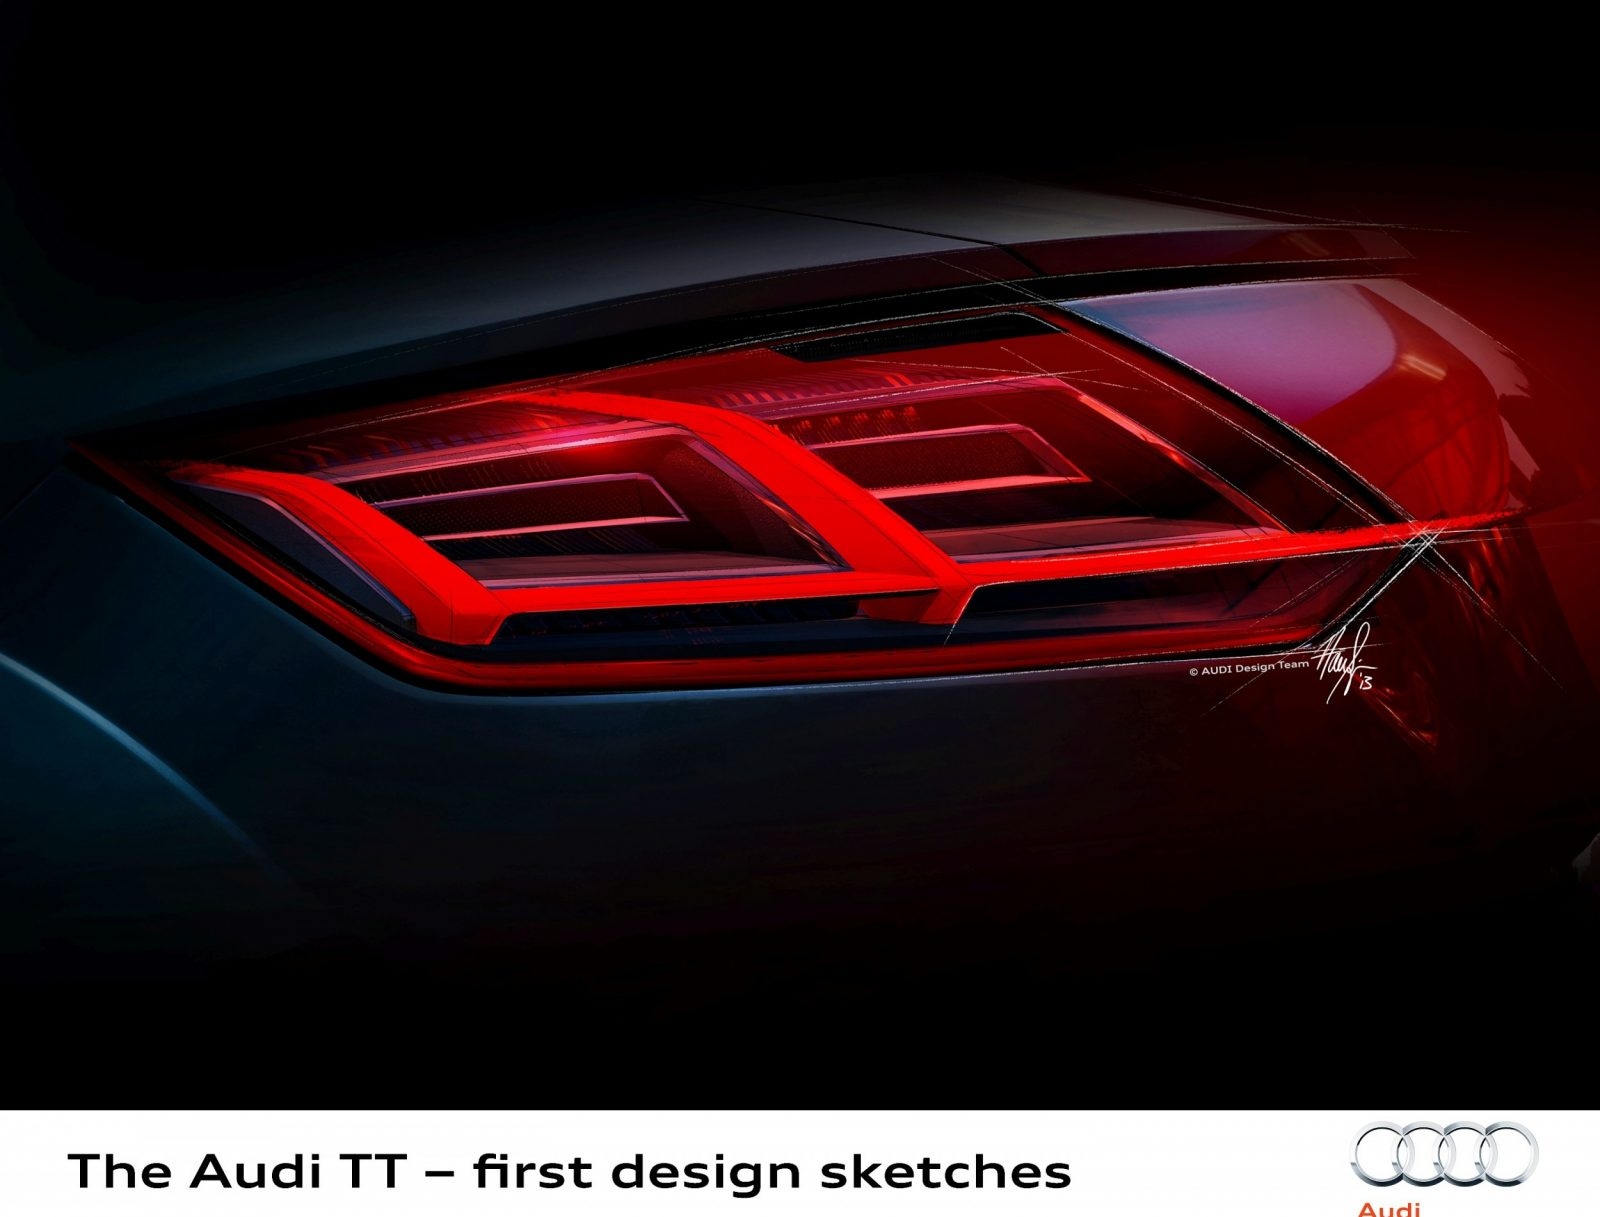 The_Audi_TT_-_first_design_sketches_Audi_51317